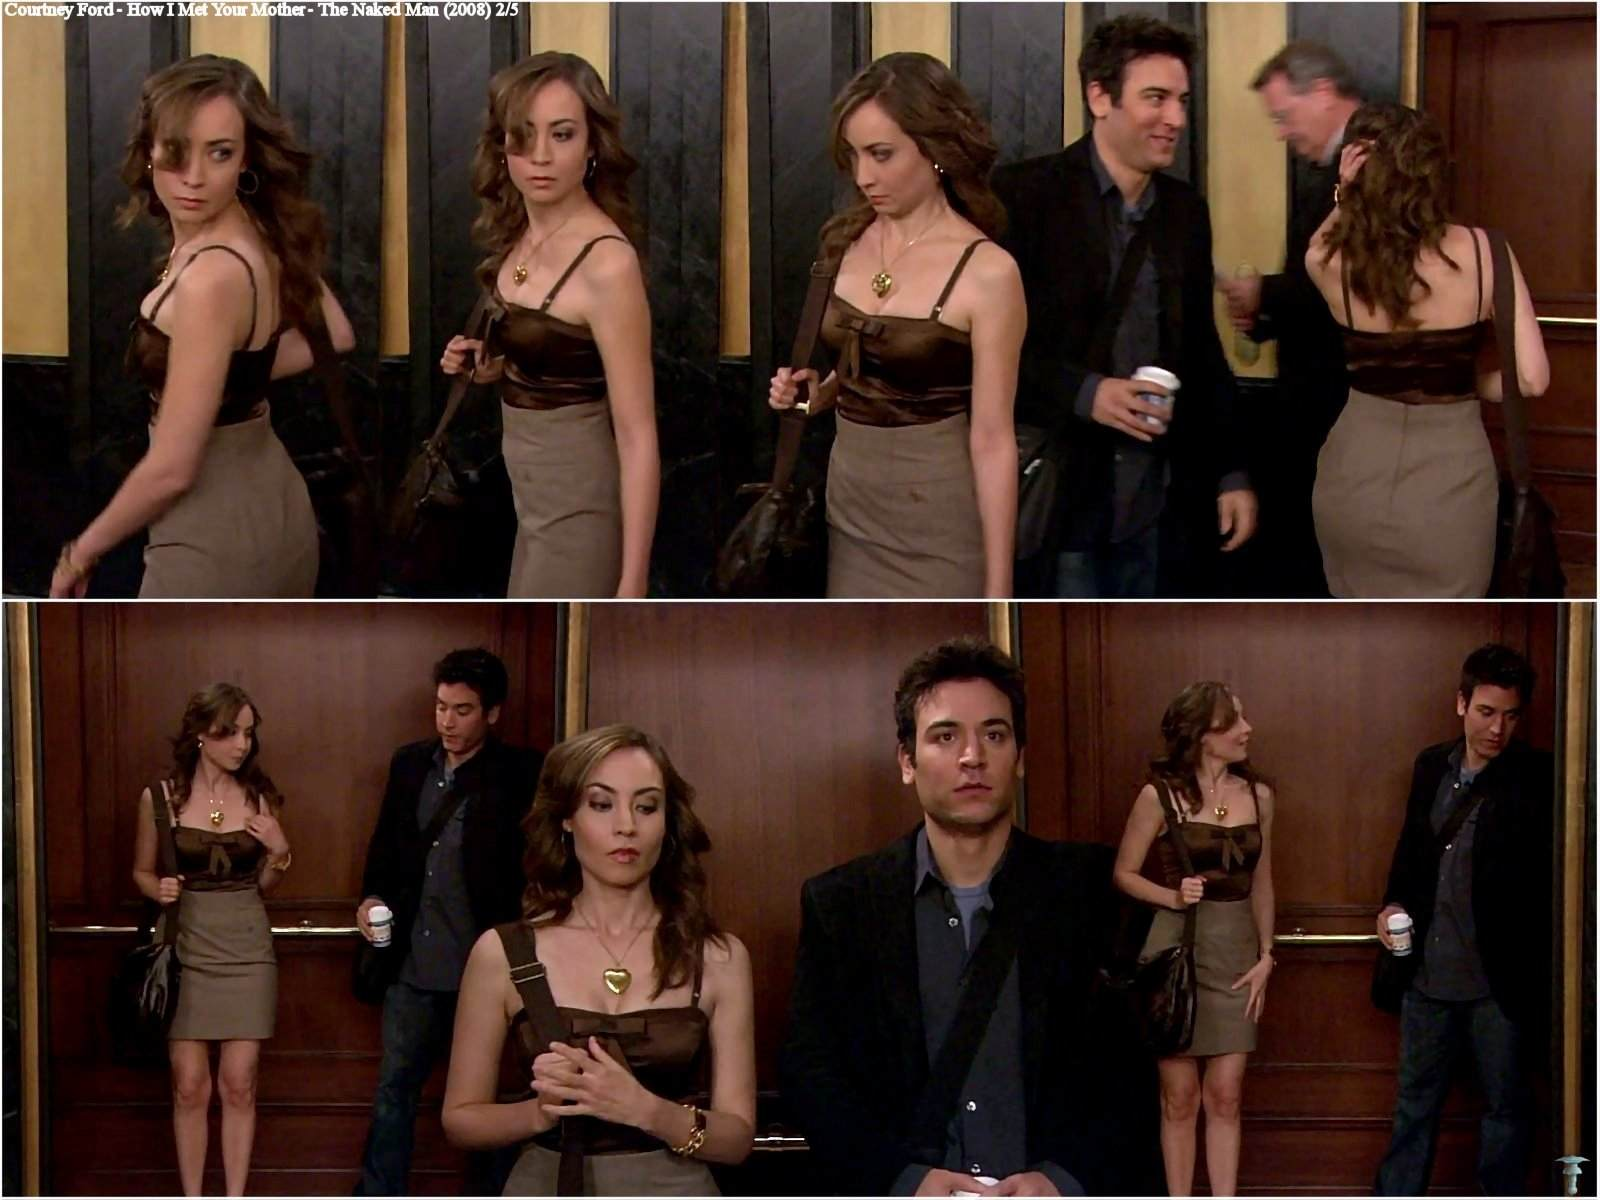 Naked Courtney Ford In How I Met Your Mother Ancensored